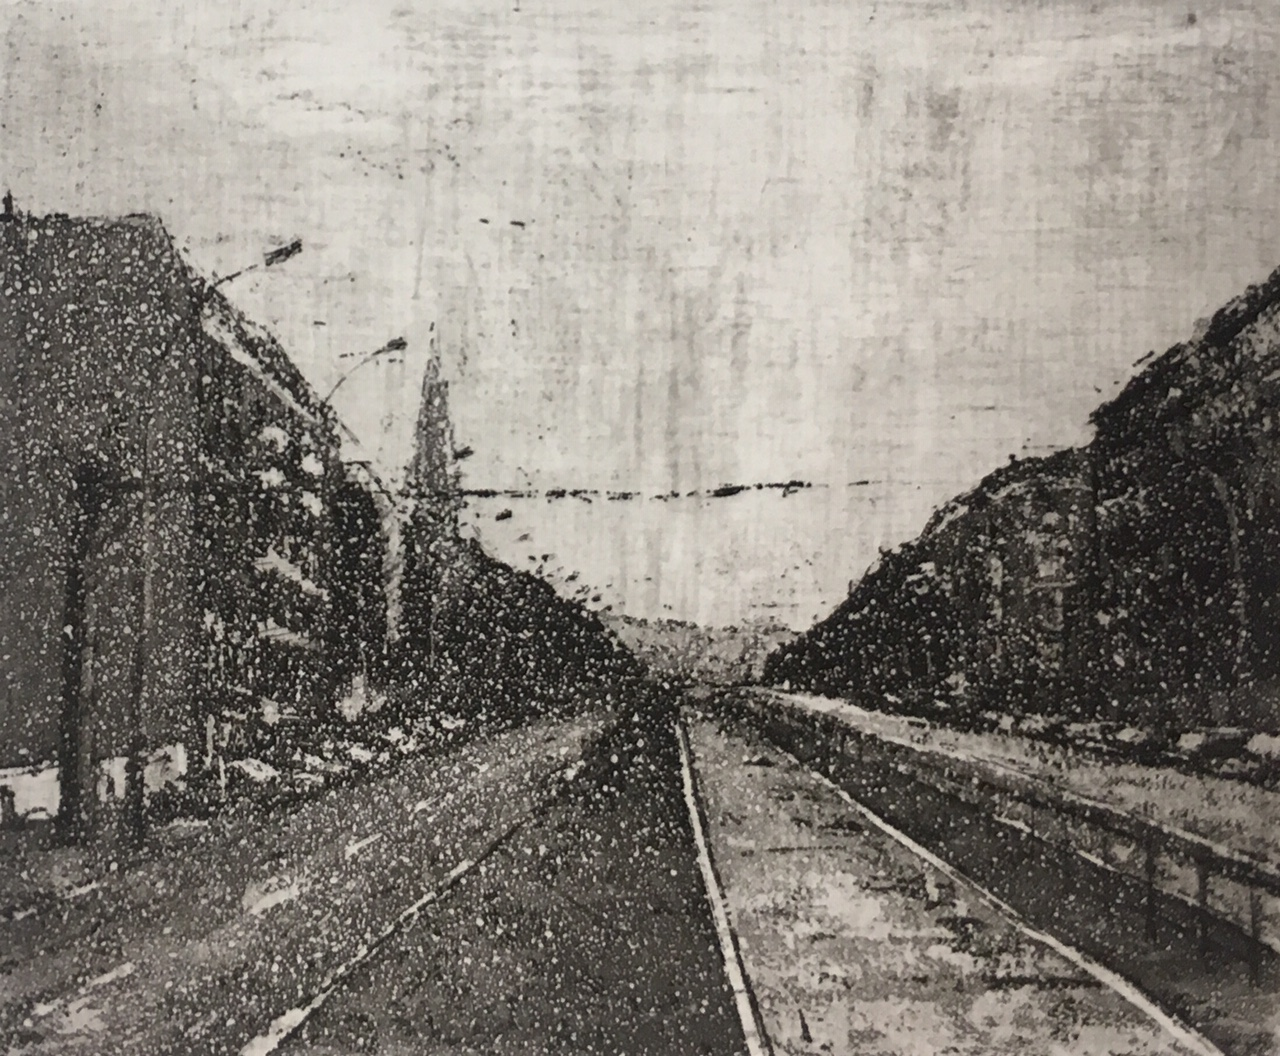 Monika Meiser | Prenzlauer Allee | 1983 | aquatint | signed and dated | 9 x 10.8 cm